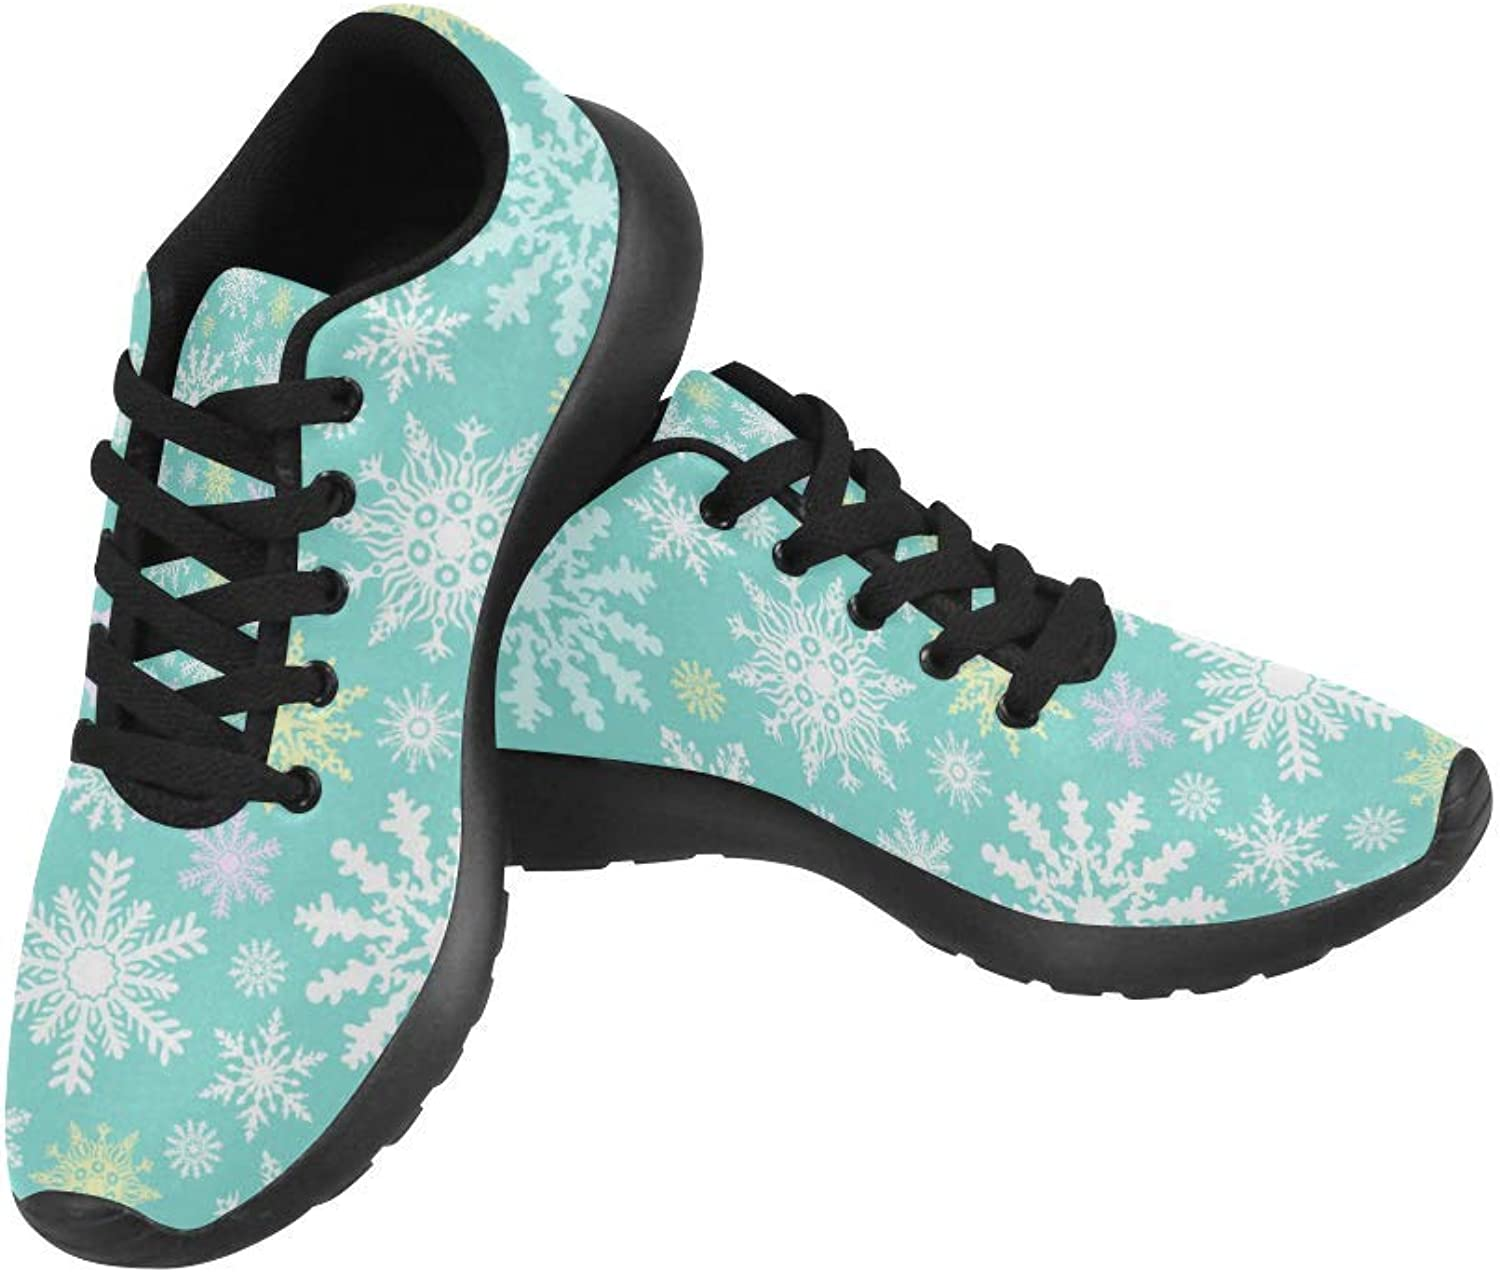 InterestPrint Winter Snowflake Pattern Print on Women's Running shoes Casual Lightweight Athletic Sneakers US Size 6-15